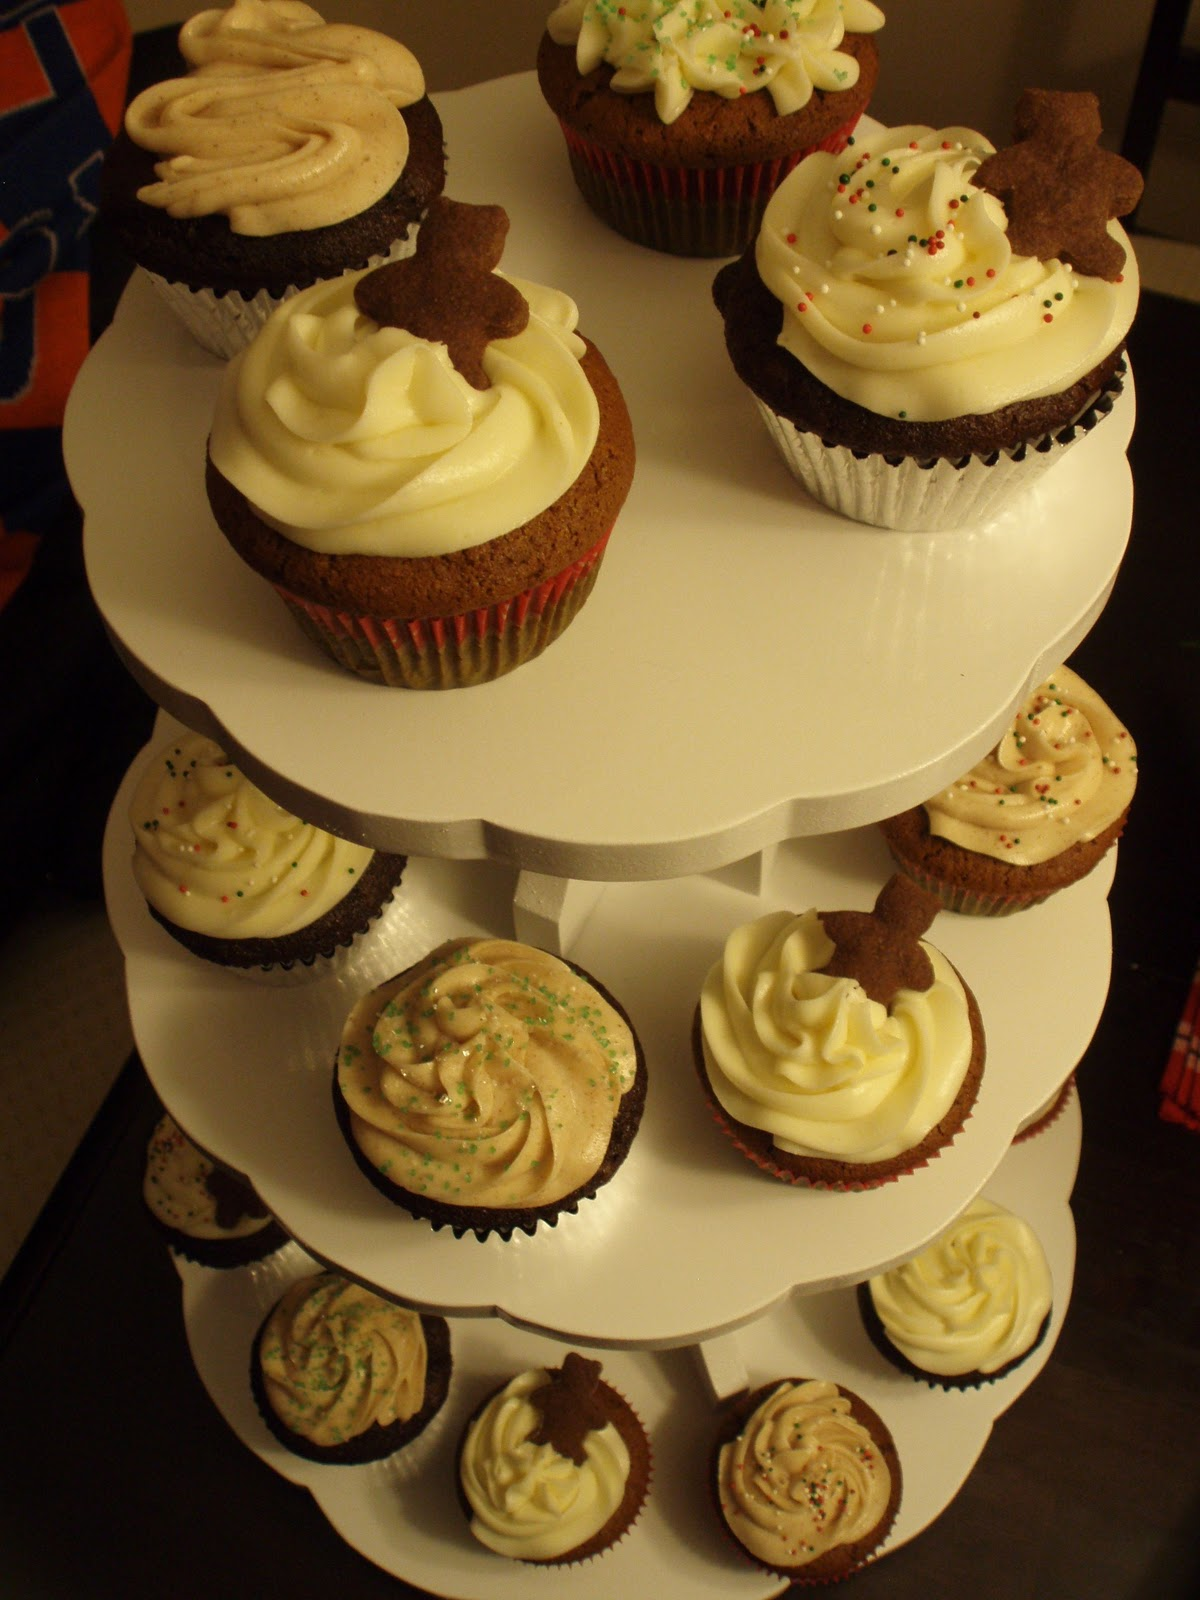 ... Cupcakes: Gingerbread Cupcakes with Cinnamon Cream Cheese Frosting